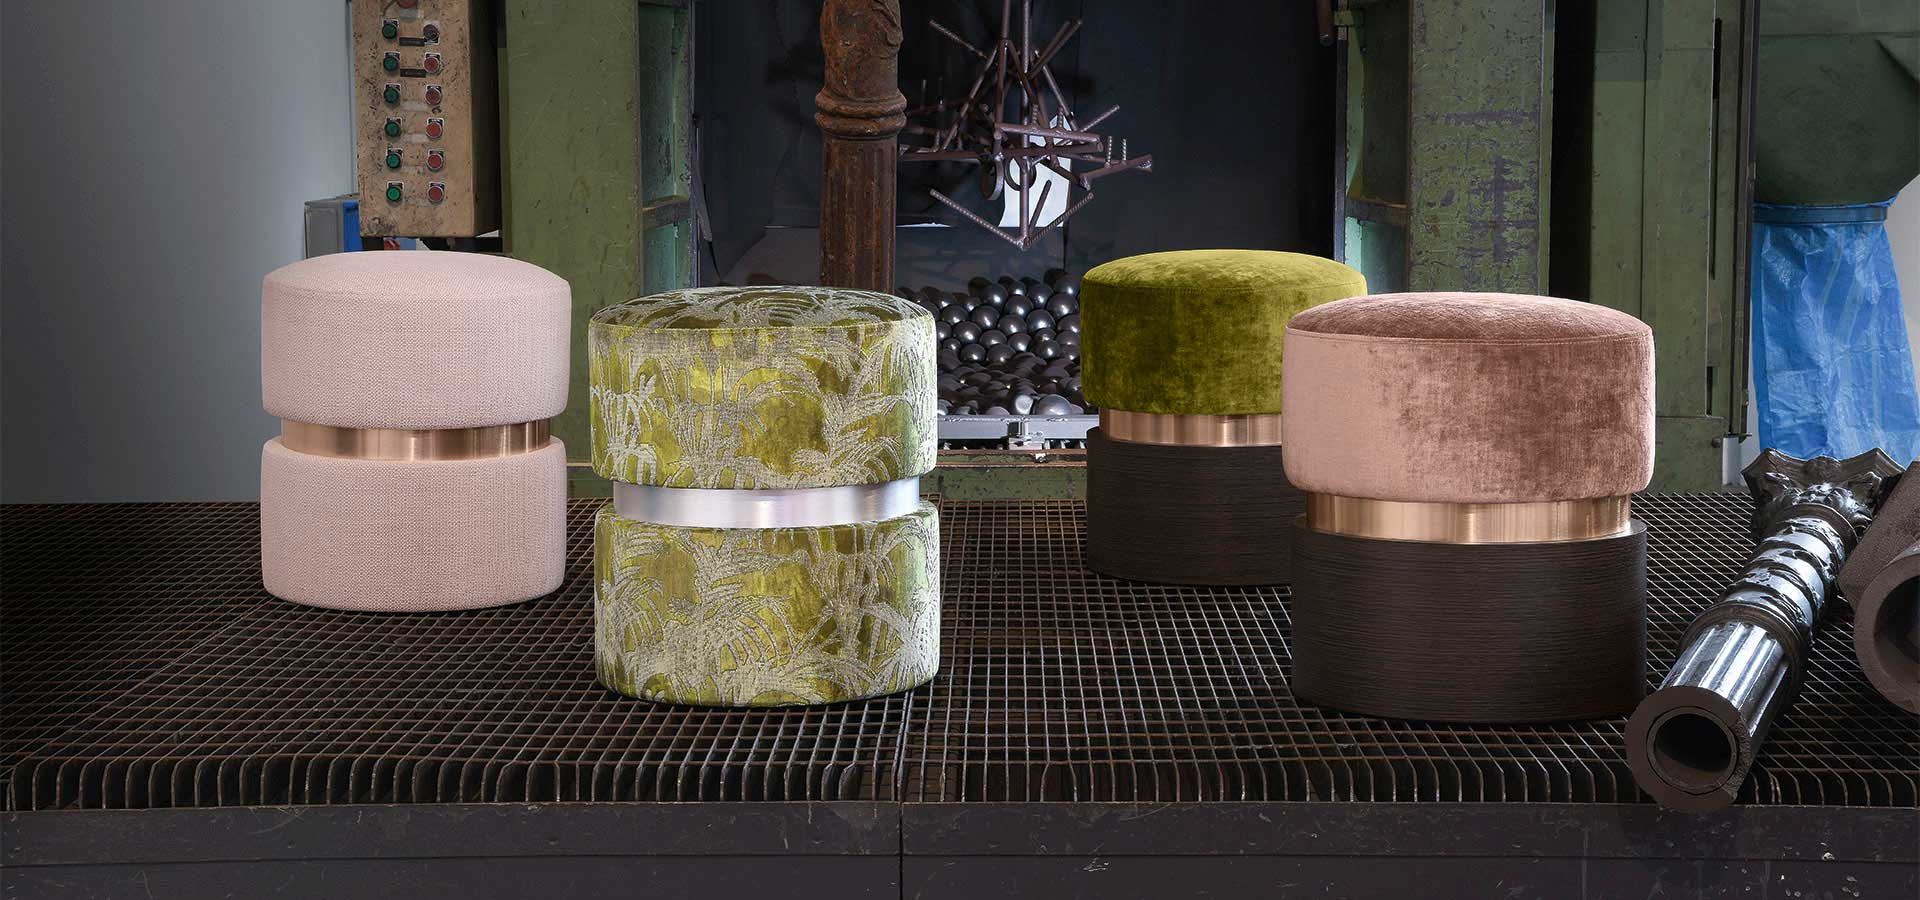 Contract_CollezioneDesignItalianoCollectionitalianDesign_POUF-TARA-AMB_1143